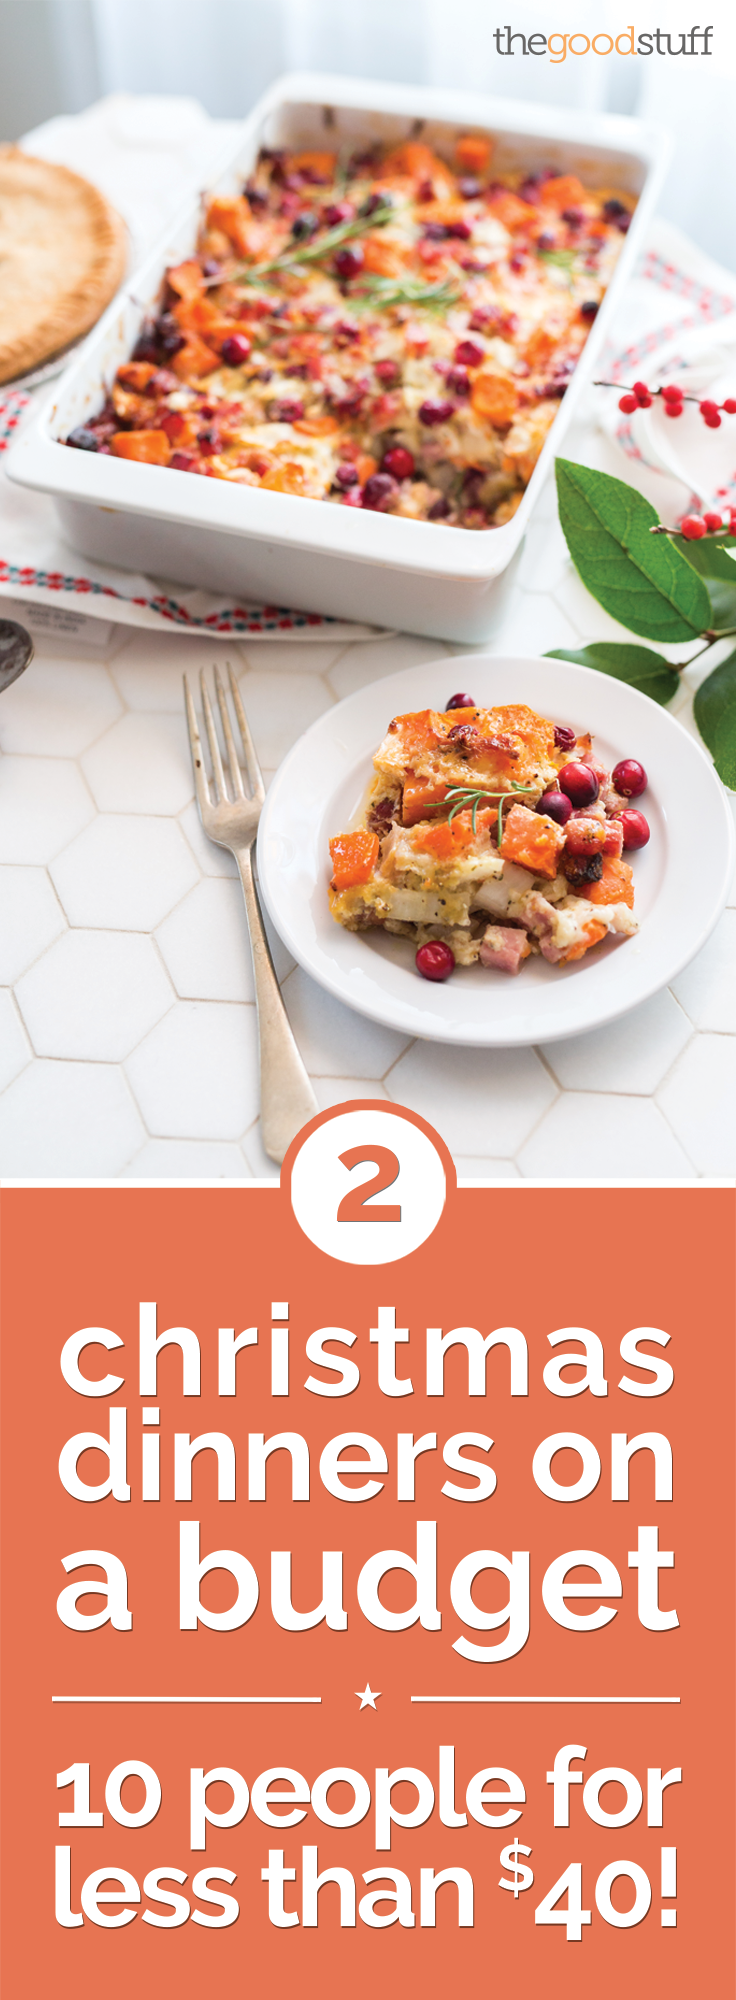 2 Christmas Dinners on a Budget: 10 People for Less Than $40! | thegoodstuff